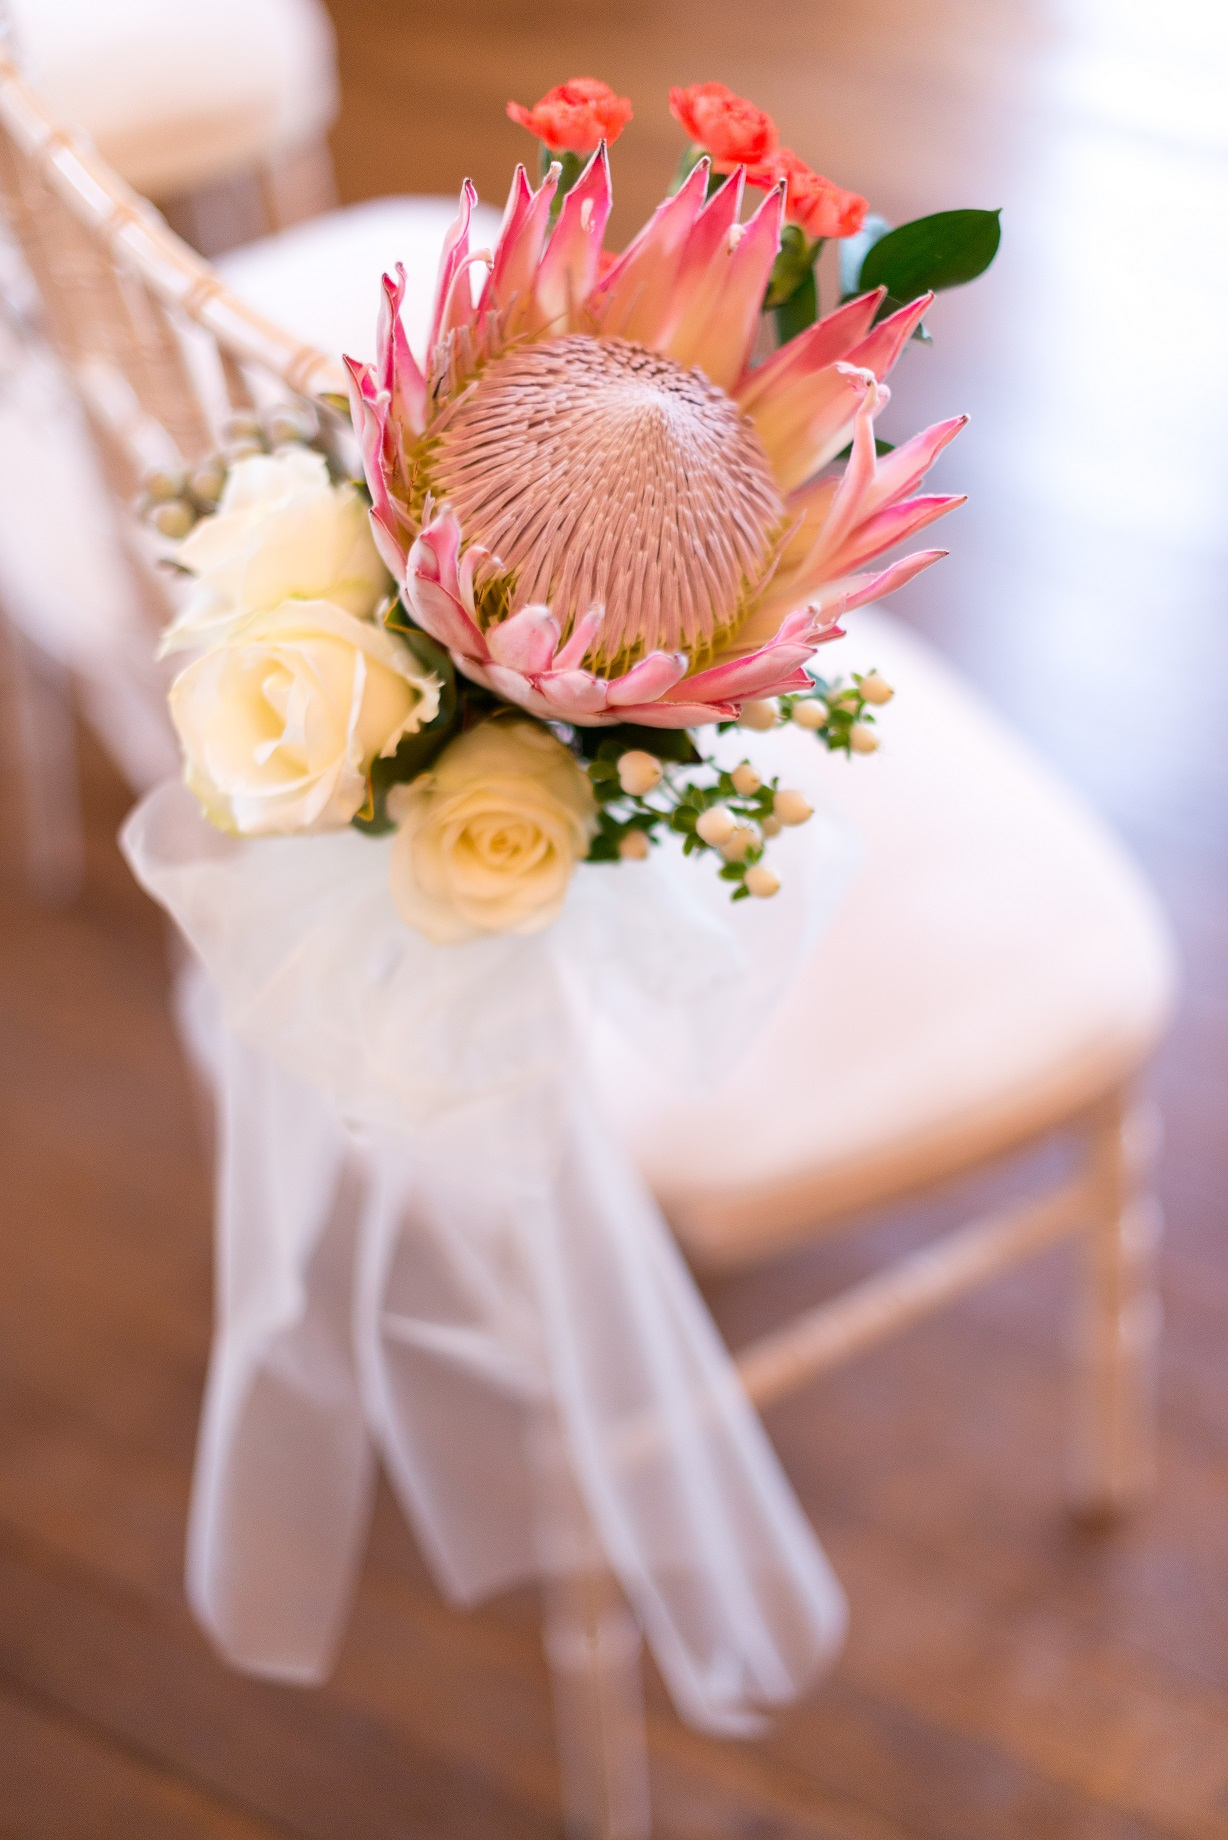 Protea wedding flowers 1.jpg